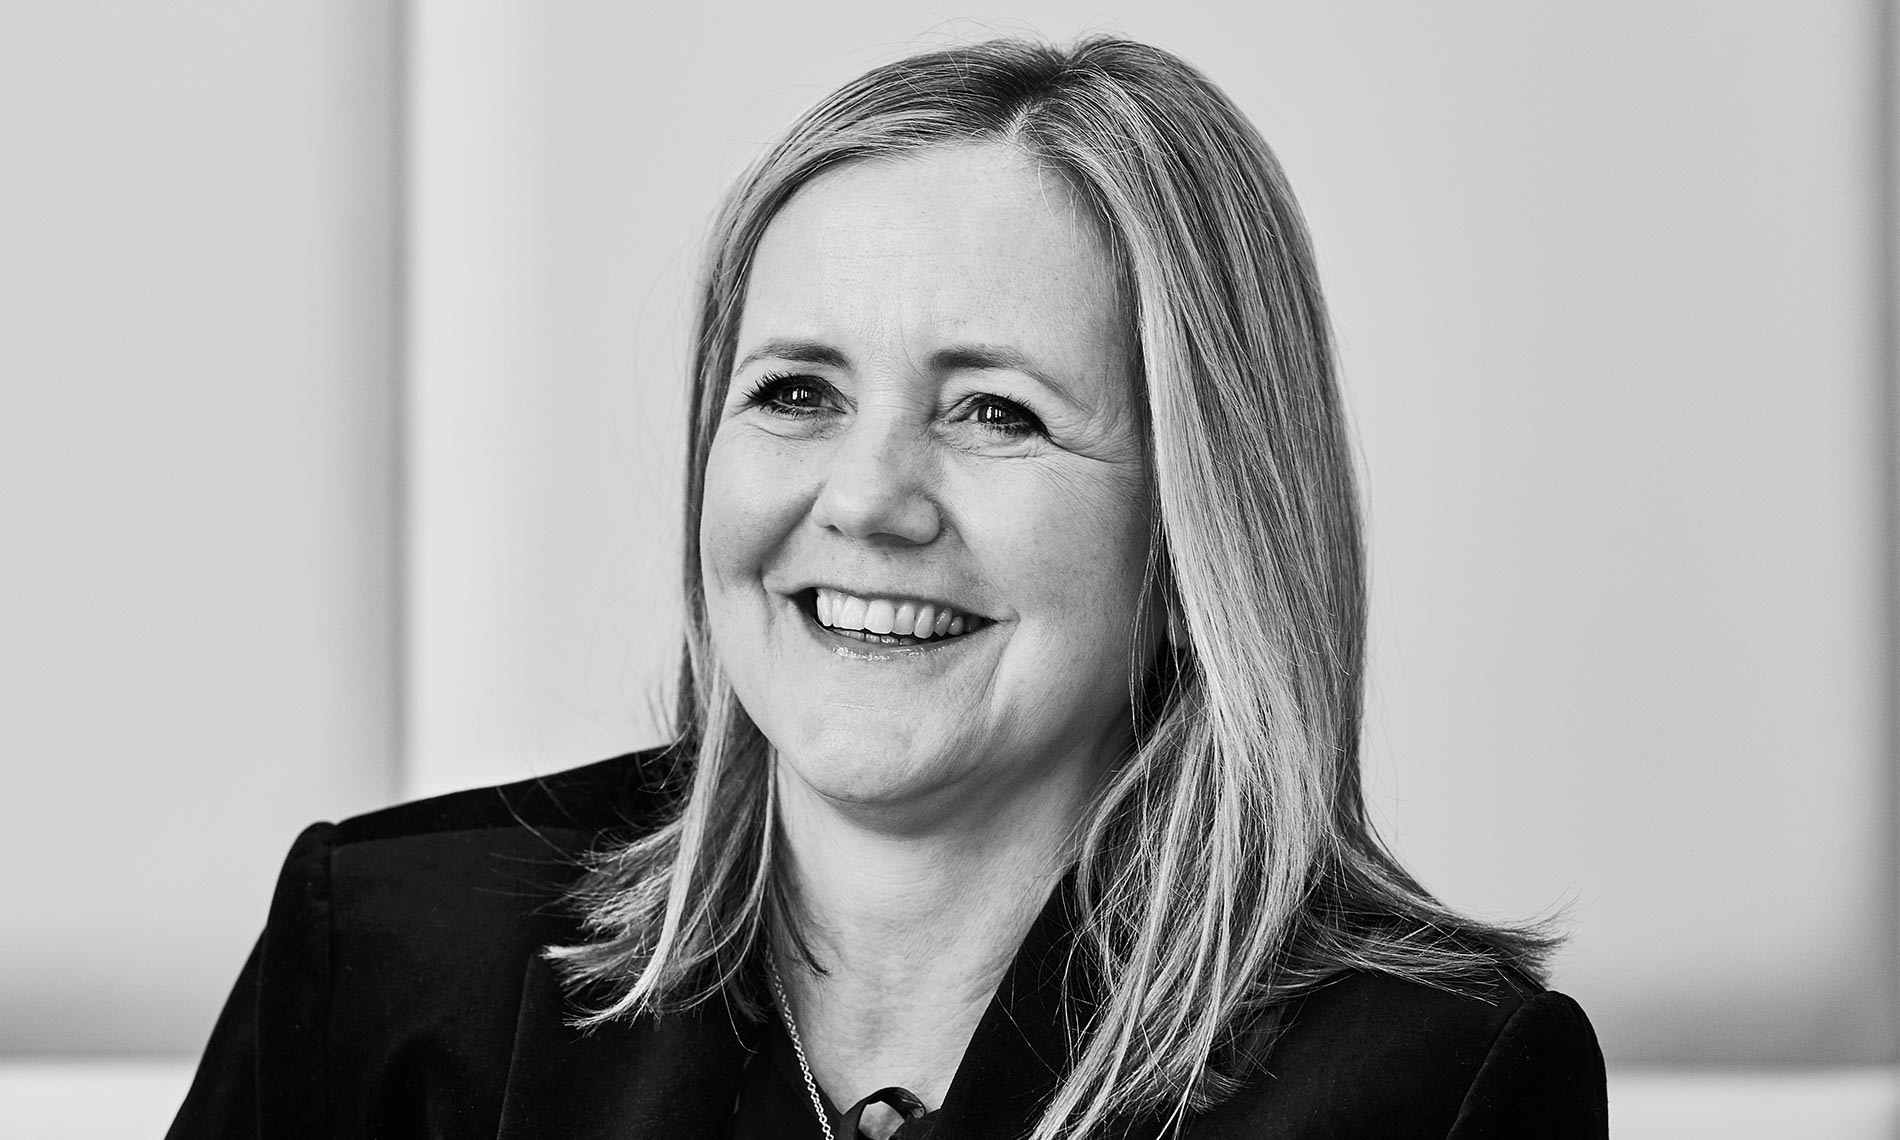 Life during law: Claire Wills